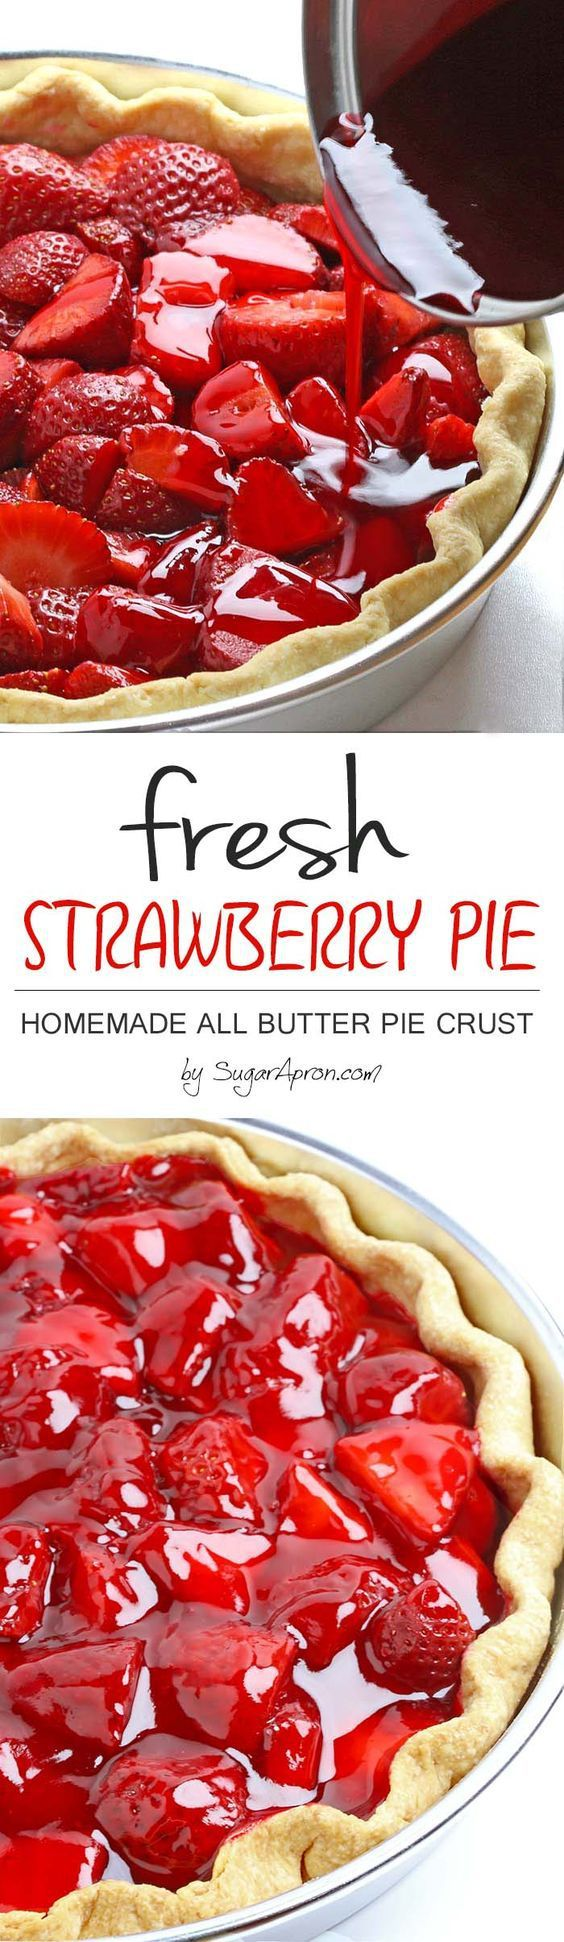 Fresh Homemade Strawberry Pie Dessert Recipe via Sugar Apron - This easy fresh strawberry pie with Homemade All Butter Crust is bursting with fresh strawberries. It's a perfect spring treat! Favorite EASY Pies Recipes - Brunch Dessert No-Bake + Bake Musts